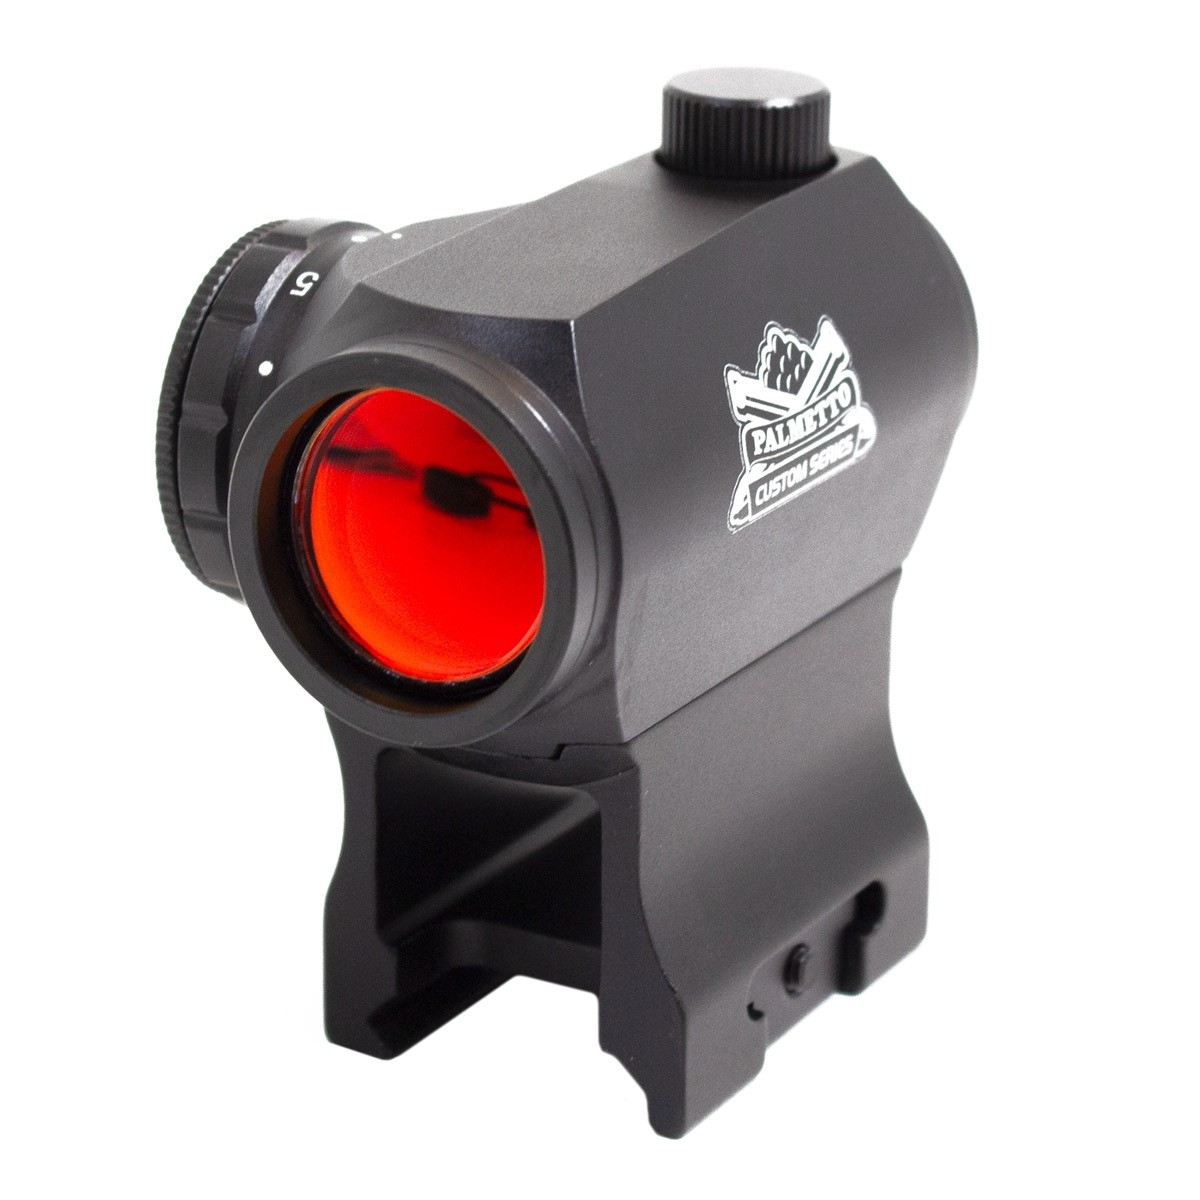 PALMETTO STATE ARMORY INTRODUCES THEIR OWN CUSTOM 2 MOA RED DOT OPTIC!!